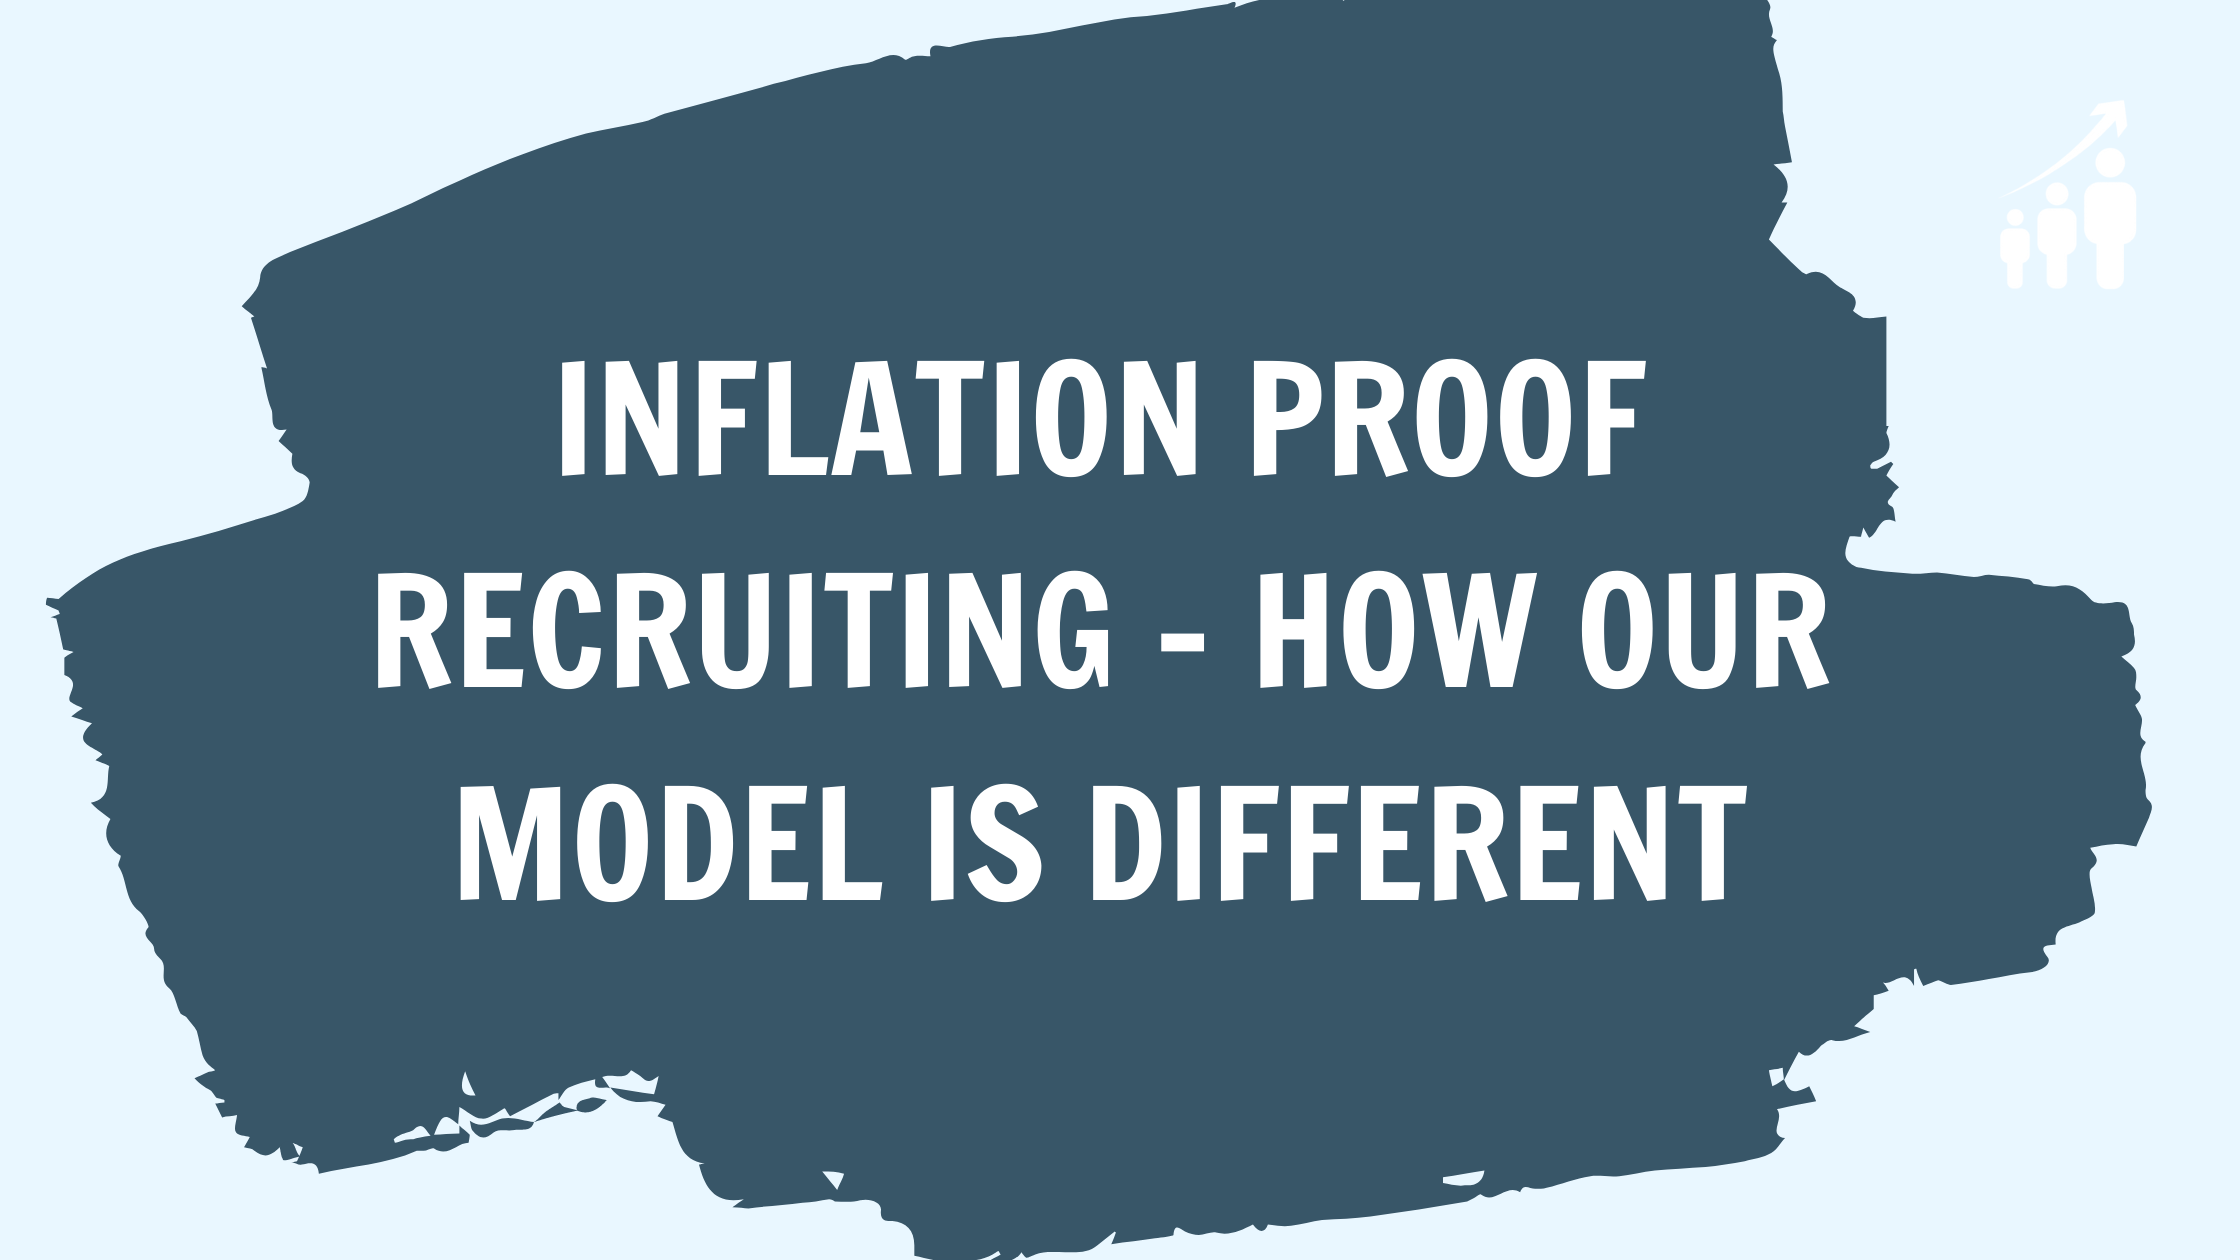 Inflation Proof Recruiting - How Our Model is Different